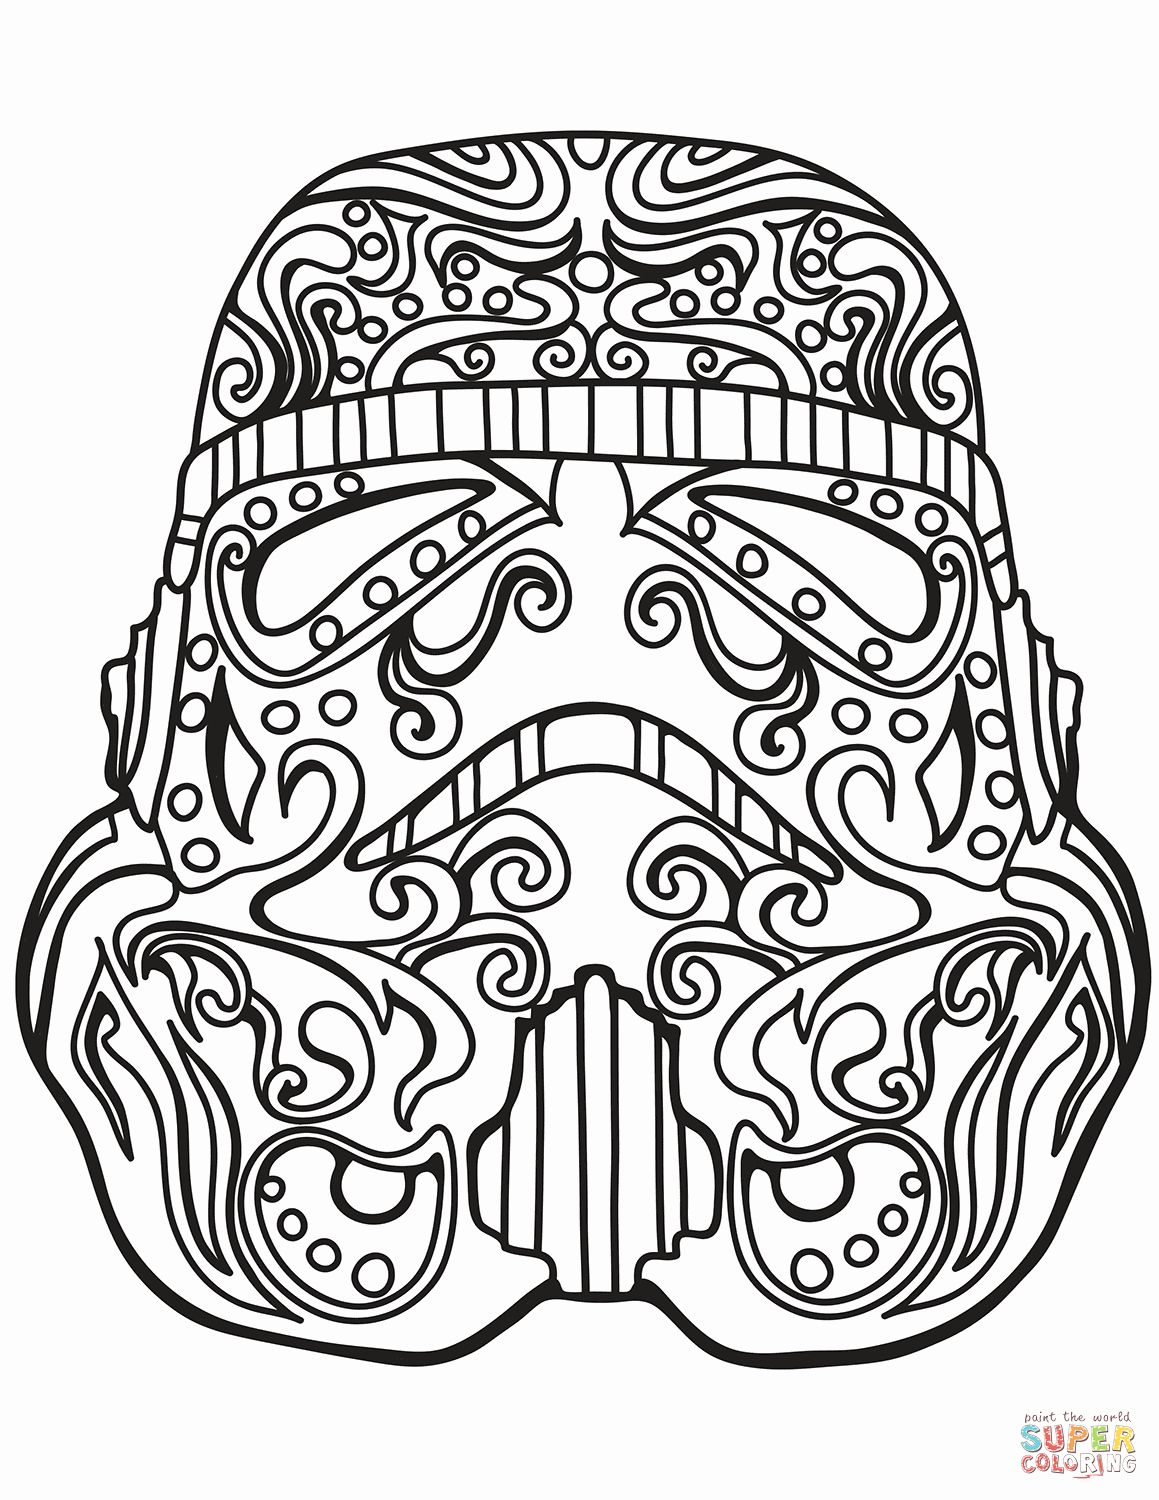 Star Wars Coloring Book For Adults Fresh Star Wars Stormtrooper Sugar Skull Coloring Page In 2020 Star Wars Coloring Book Skull Coloring Pages Coloring Pages